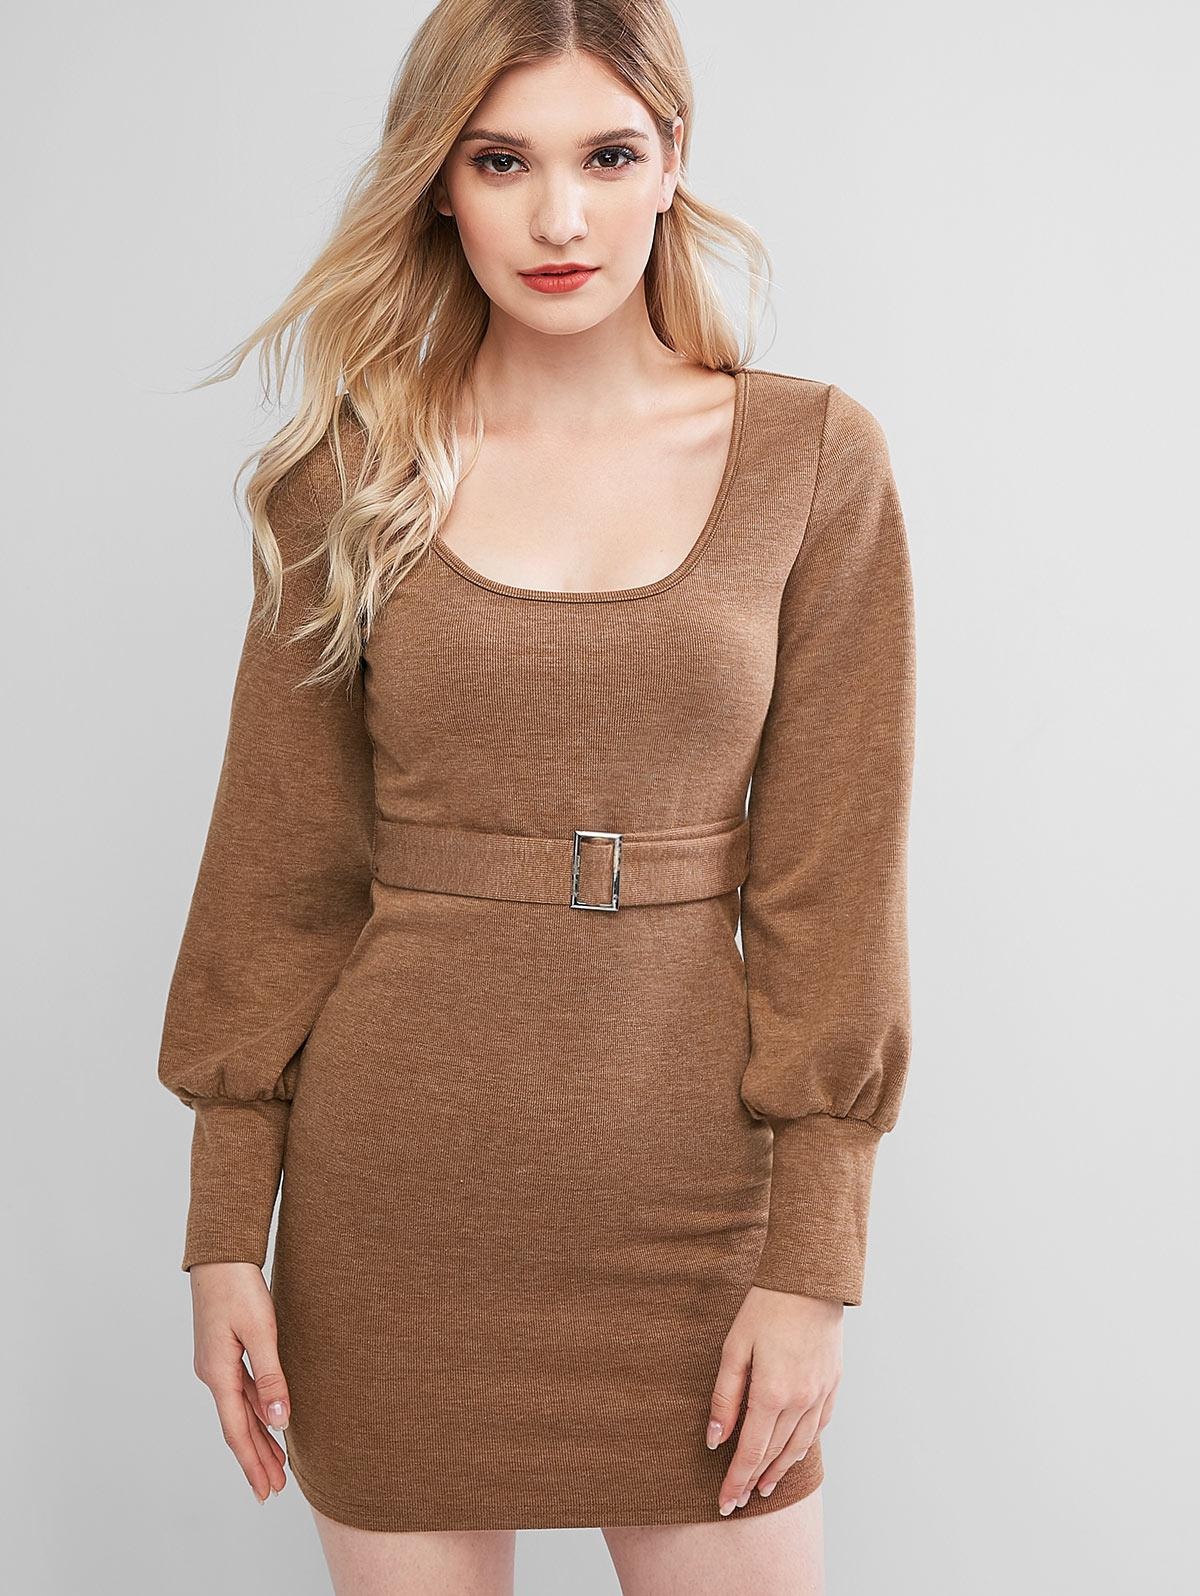 ZAFUL Knitted Belted Bodycon Mini Dress